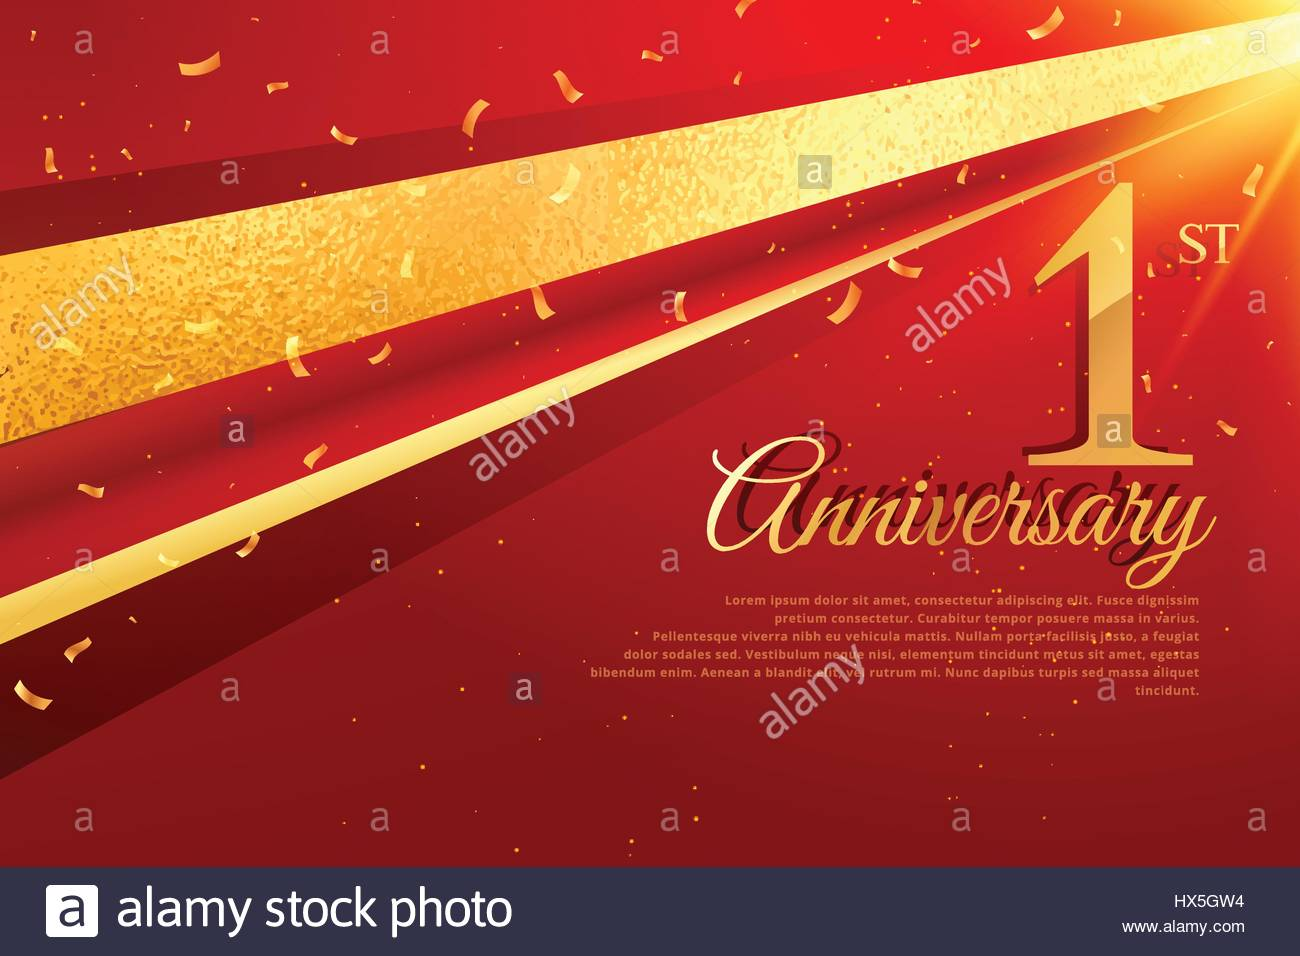 1st anniversary celebration card template - Stock Vector